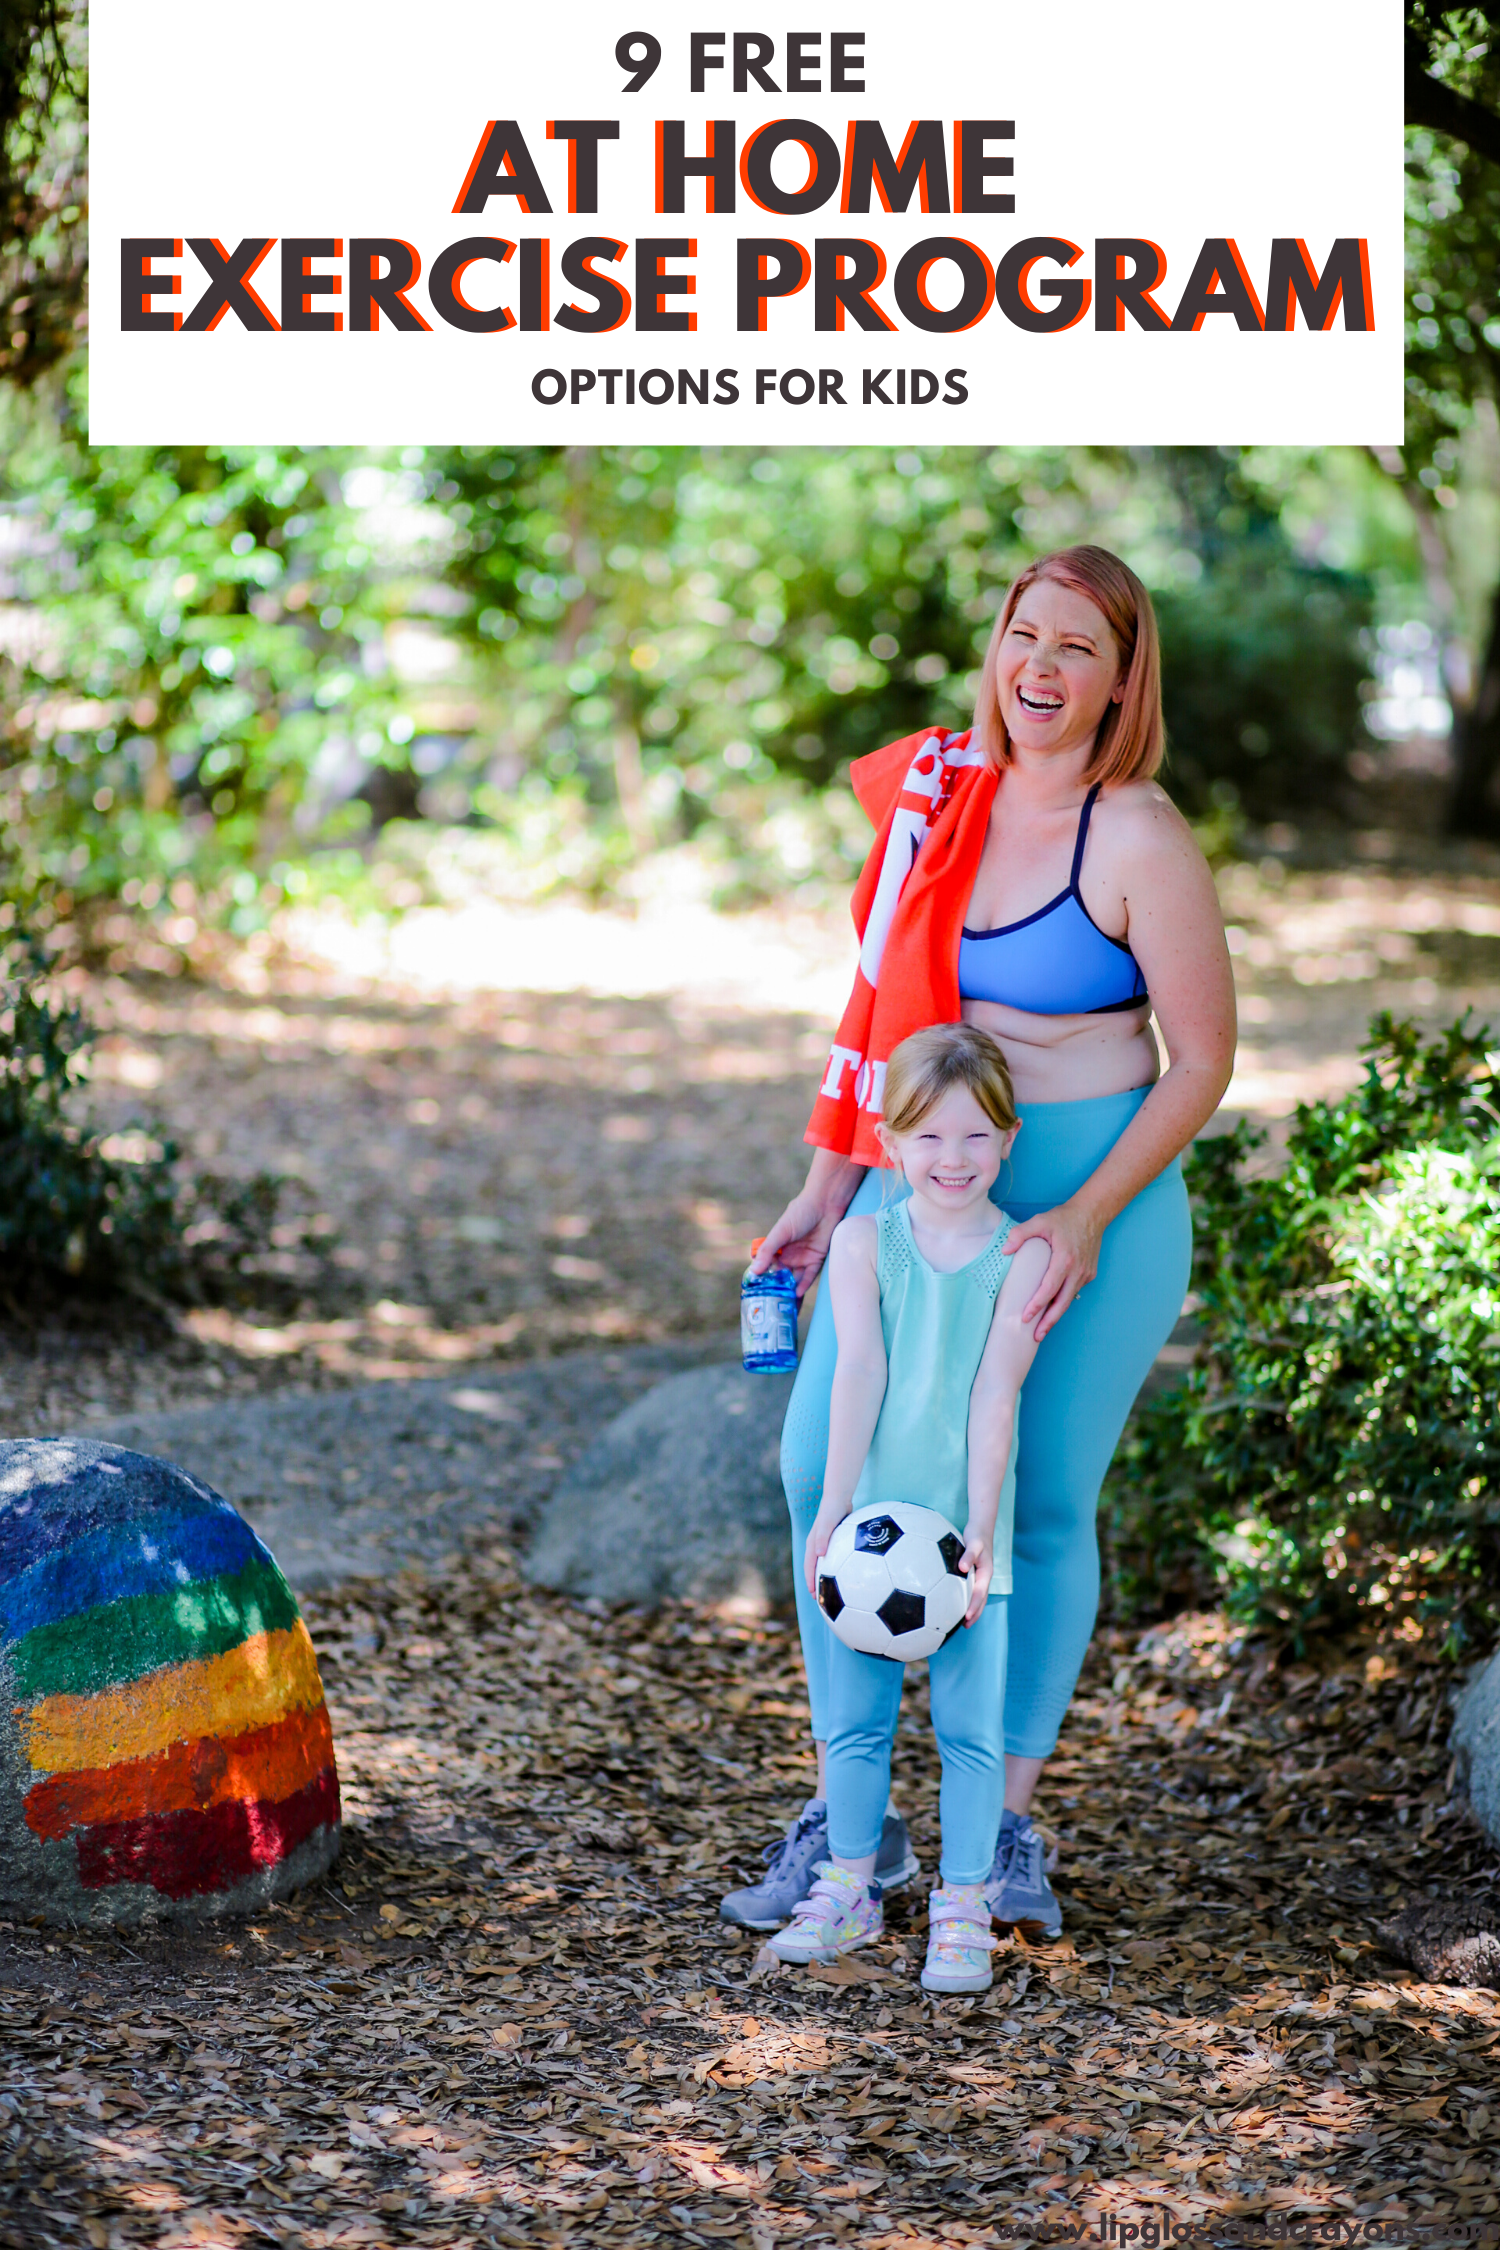 Looking for at home workouts for kids? These are all free options guaranteed to keep your kids happy, busy and moving!